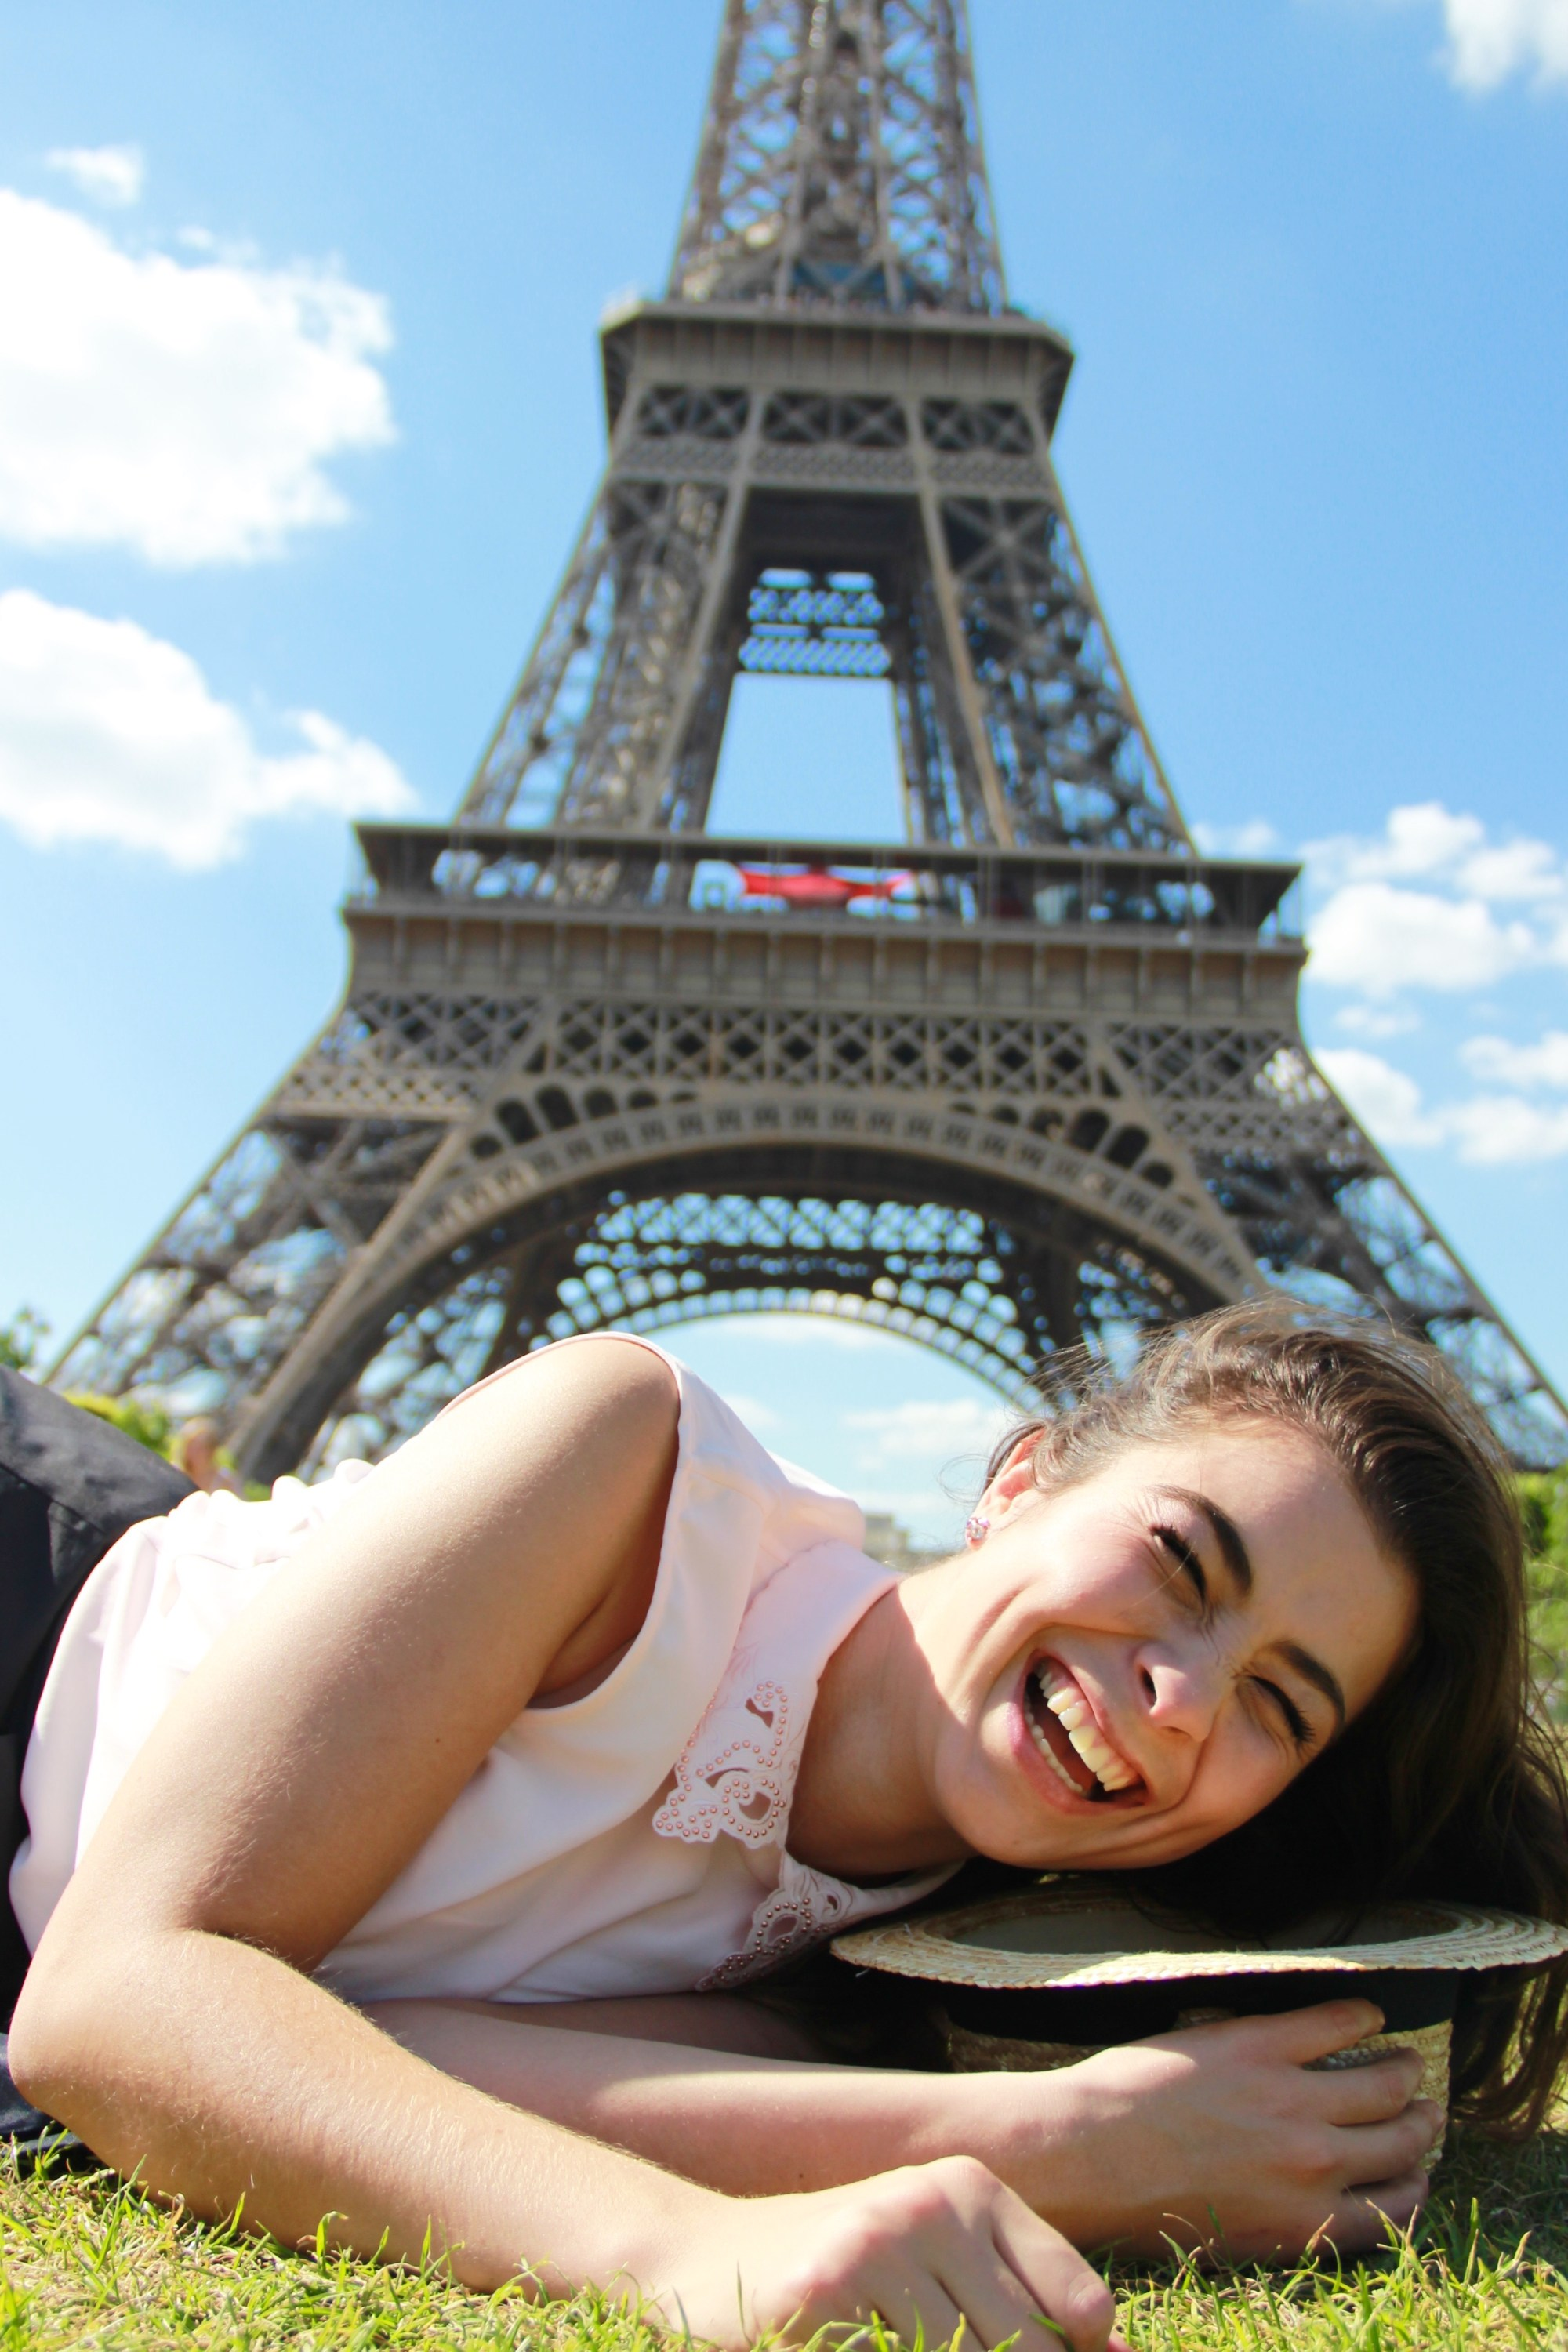 Taking a little nap by the Eiffel Tower ;)